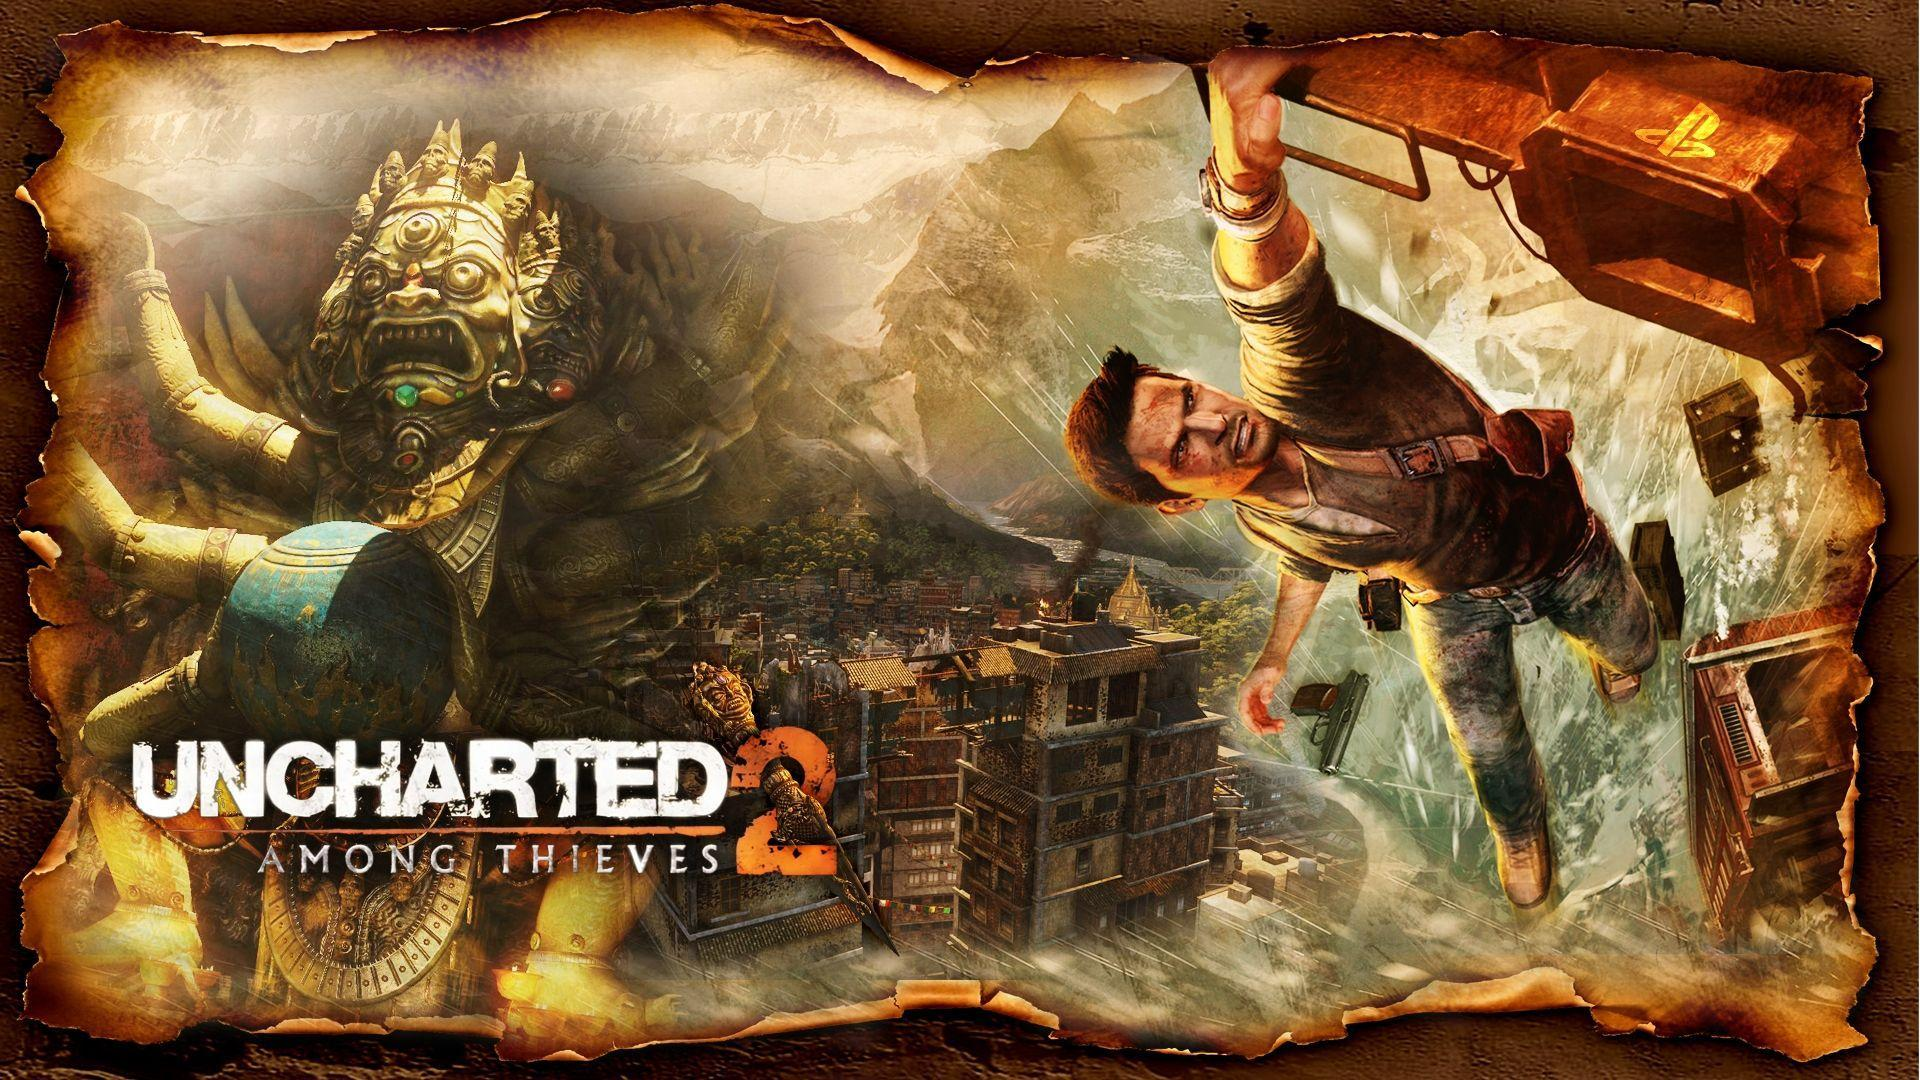 Full HD 1080p Uncharted 2 among thieves Wallpapers HD, Desktop